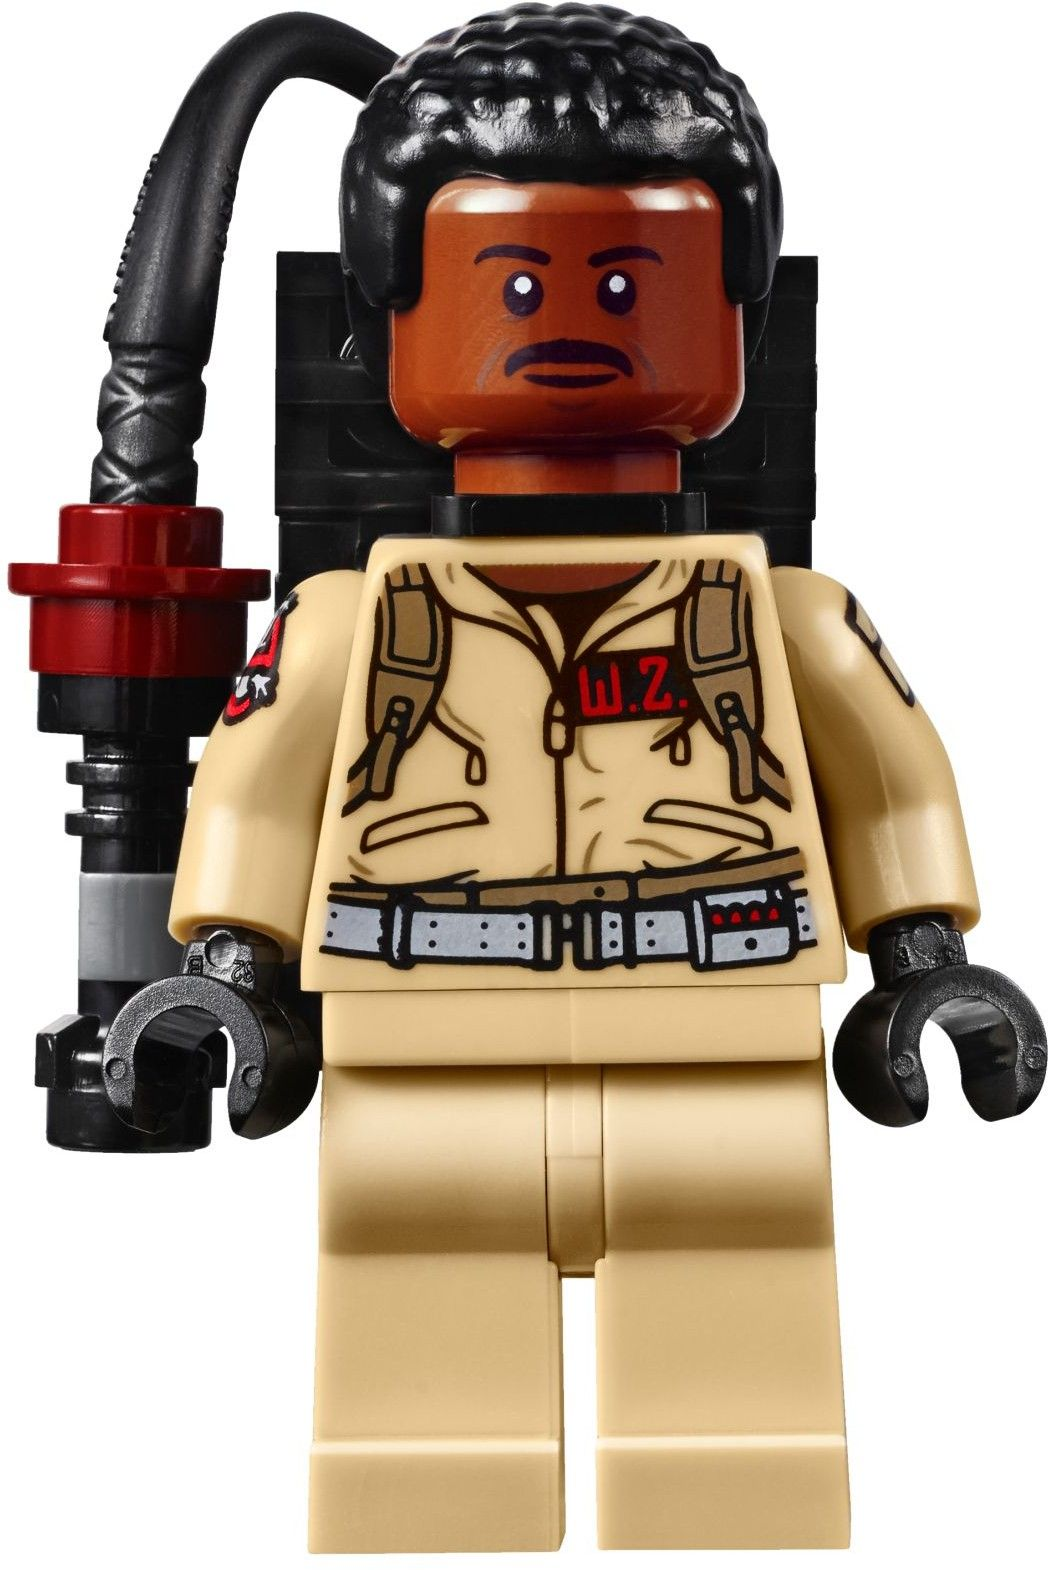 Image Result For Lego Ghostbusters Ghostbusters Lego Minifigures Cool Lego Creations